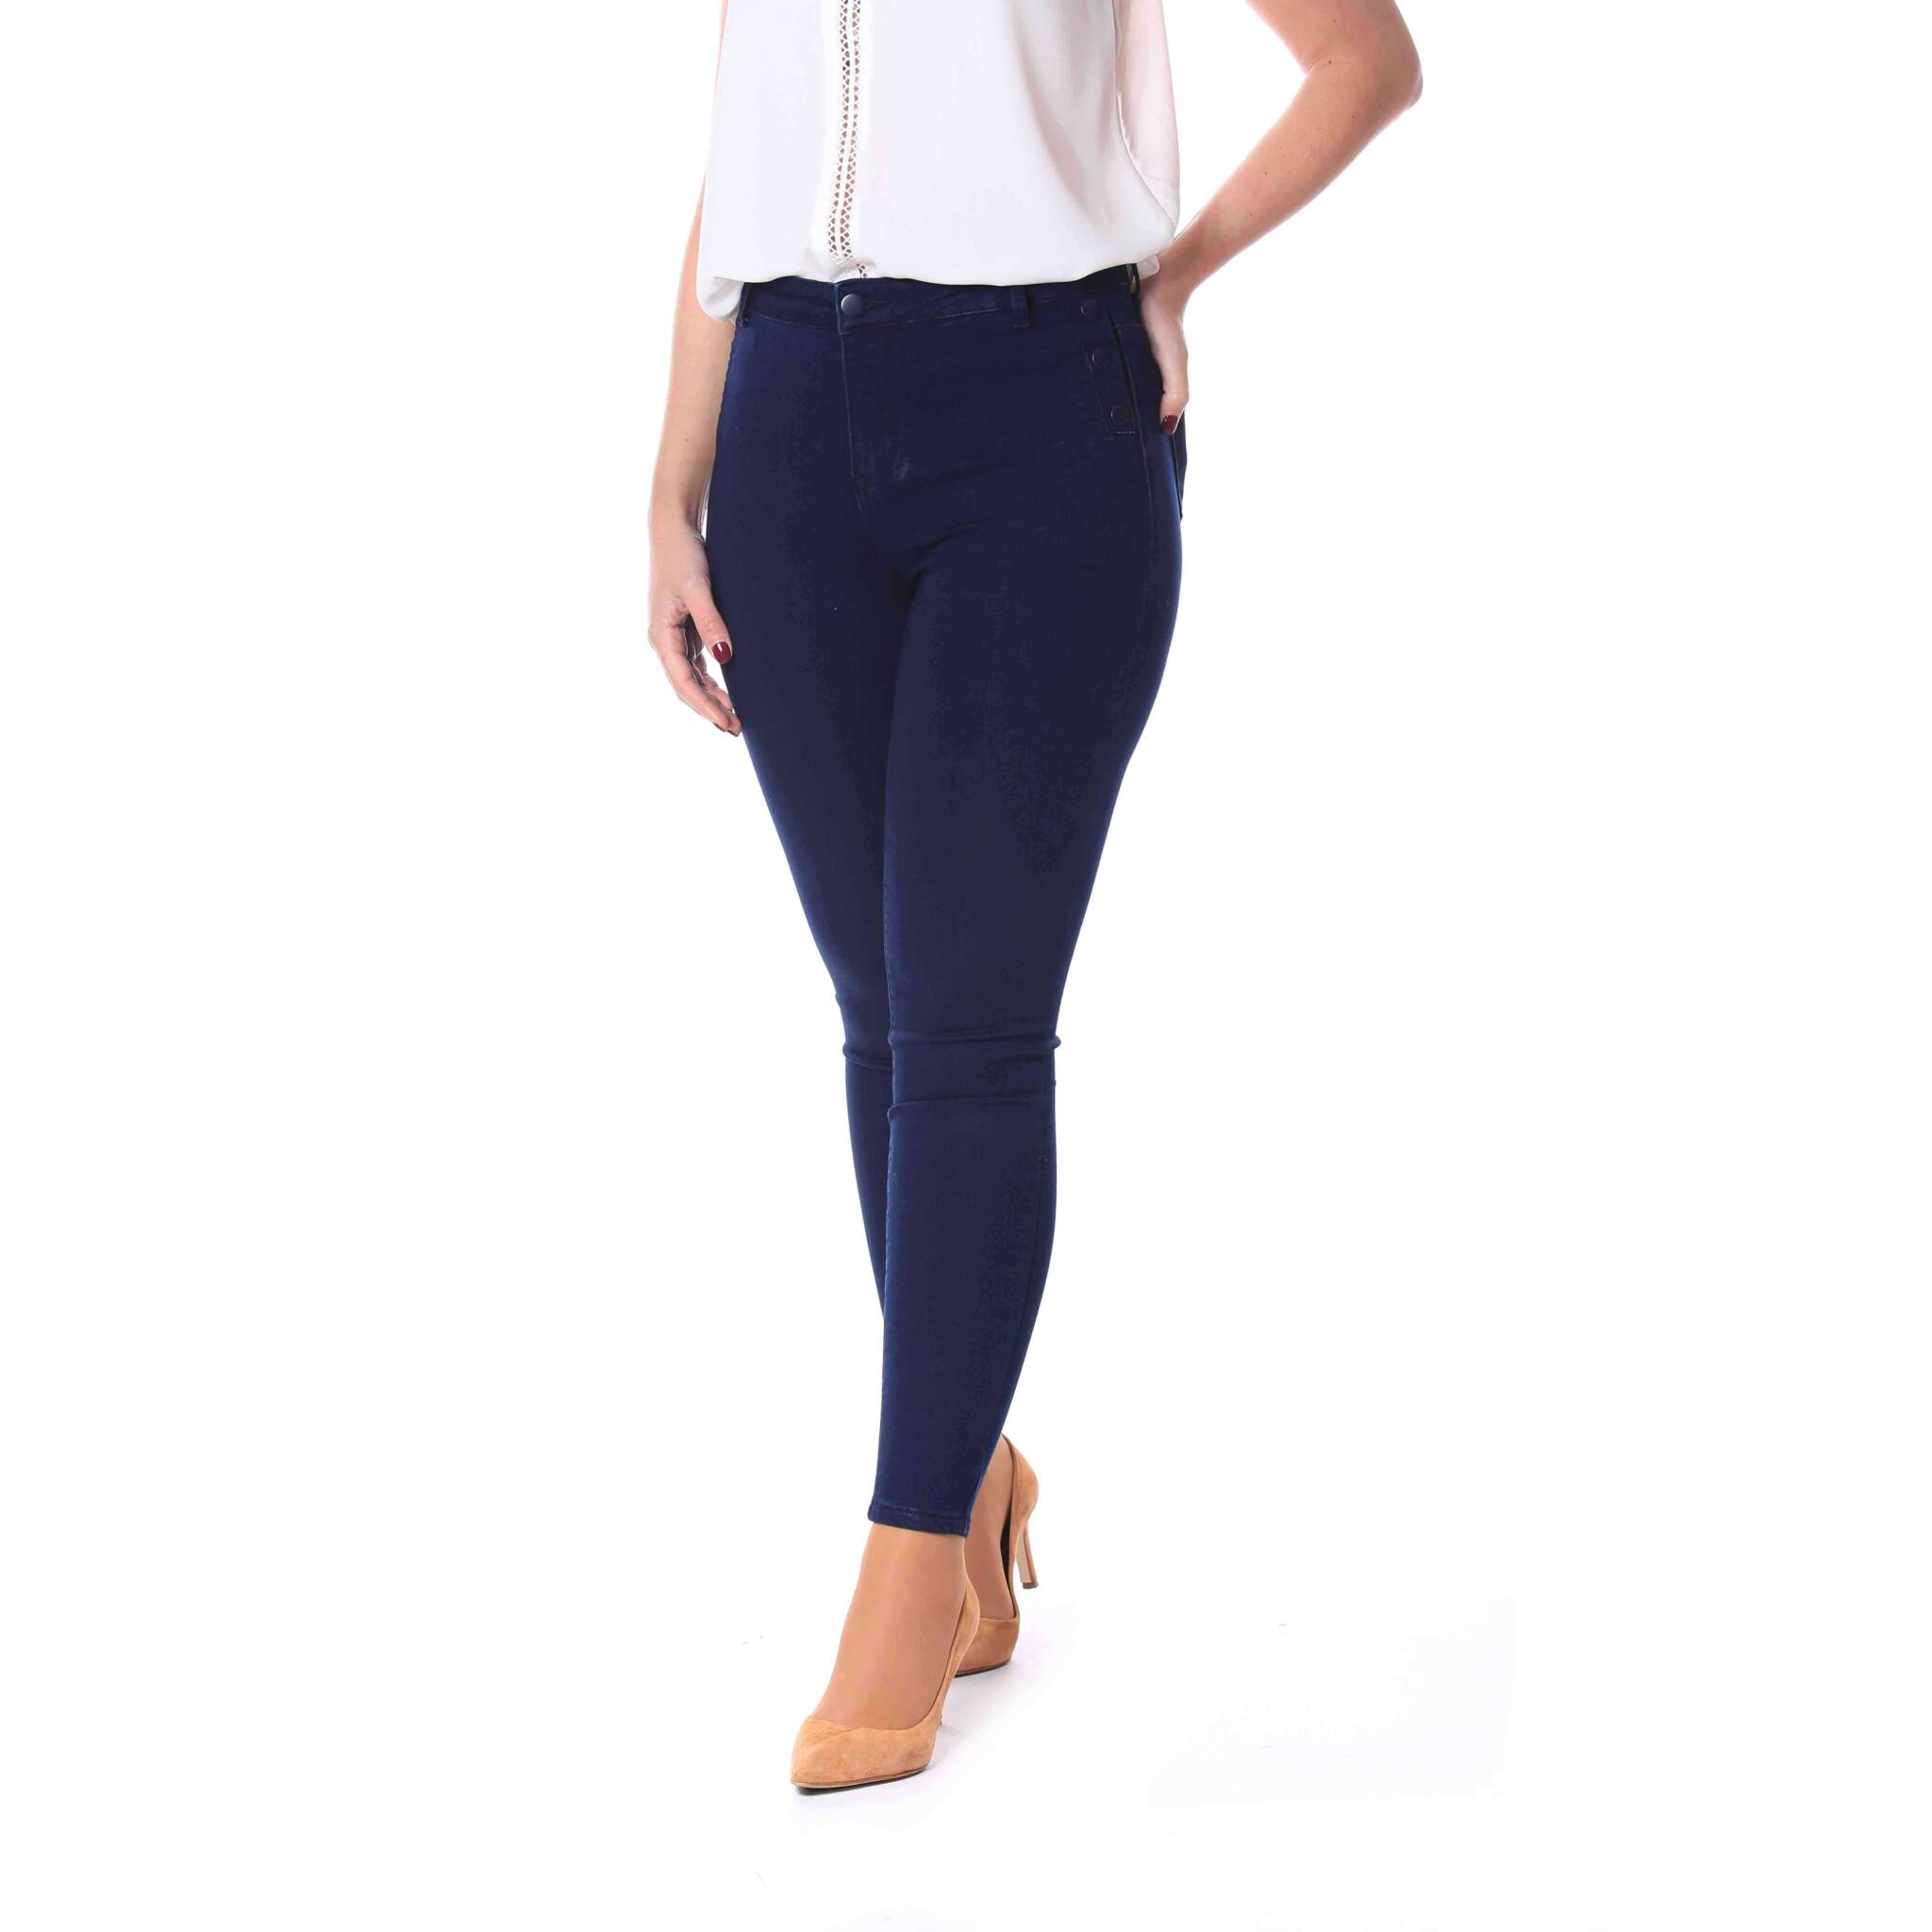 b5ac27aaf48 Jeans skinny botones lateral